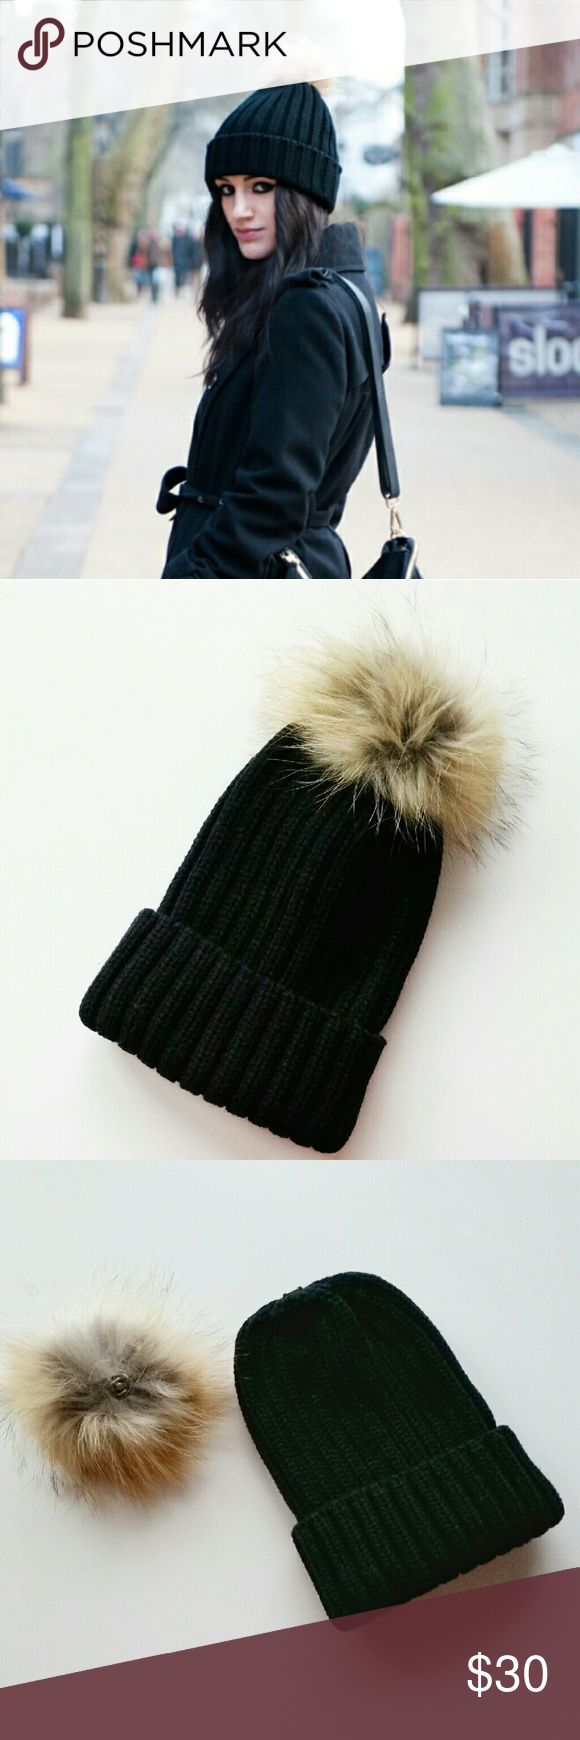 Black Ribbed Real Fur Pom Beanie Black Ribbed Fur Pom Beanie  *One Size *Black ribbed beanie with real fur pom pom. Pom is detachable. You can take it off and wear it as plain black beanie. Also, you take it off, wash your beanie and put it back on.  *100% acrylic and genuine fur  *New boutique item - No tags  *****Covershot is similar style hat for your outfit inspiration. Not actual item. Covershot credit : faiiint.com***** shop_terracotta Accessories Hats